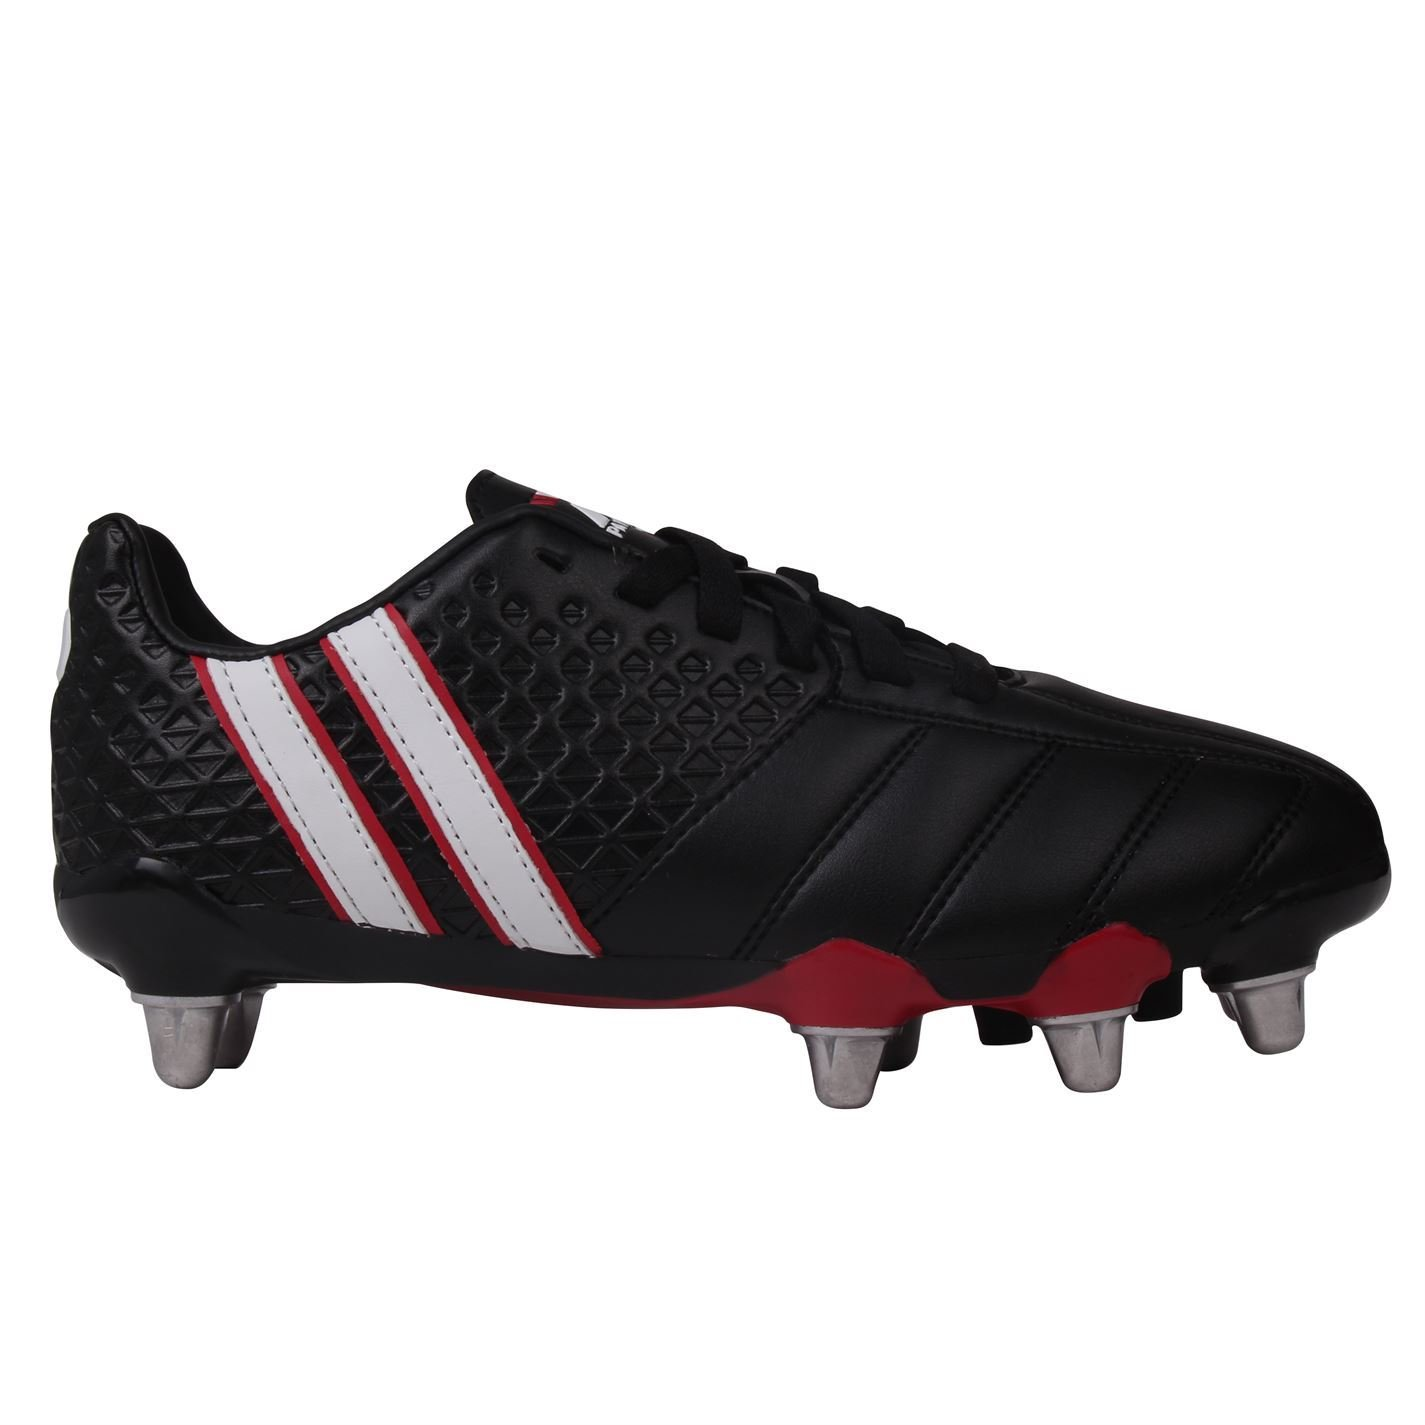 Patrick Power X Rugby Boots Juniors Black/White Studded Boots Cleats